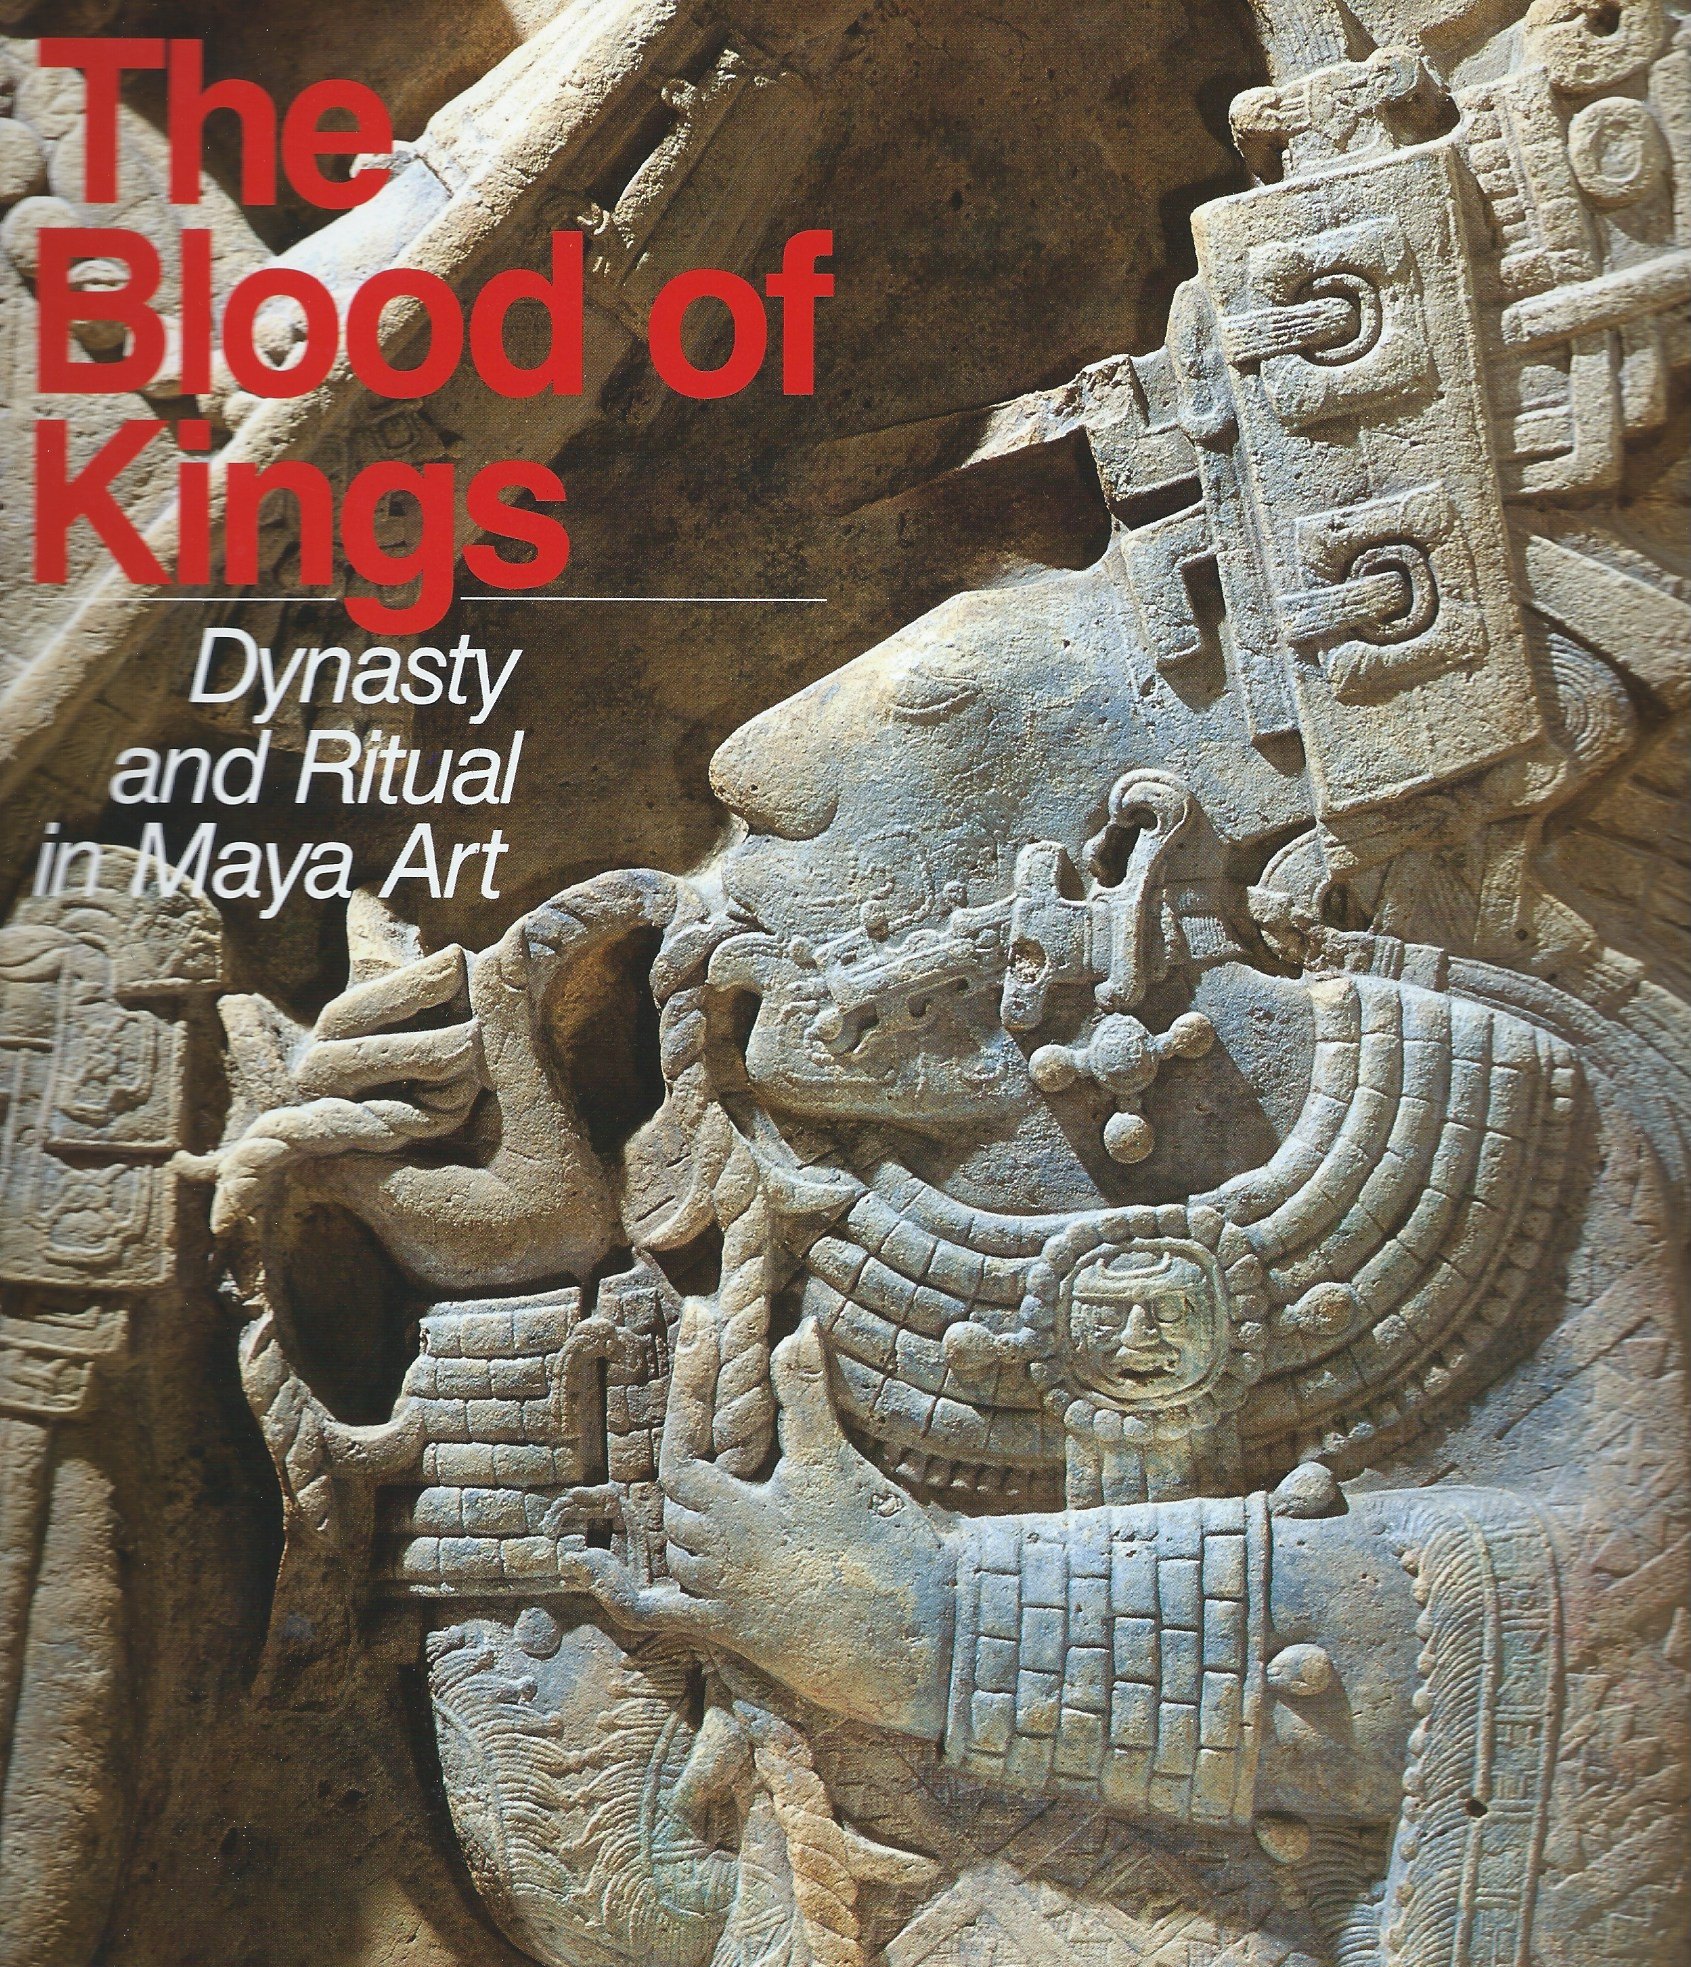 Image for Dynasty and Ritual in Maya Art; THE BLOOD OF KINGS